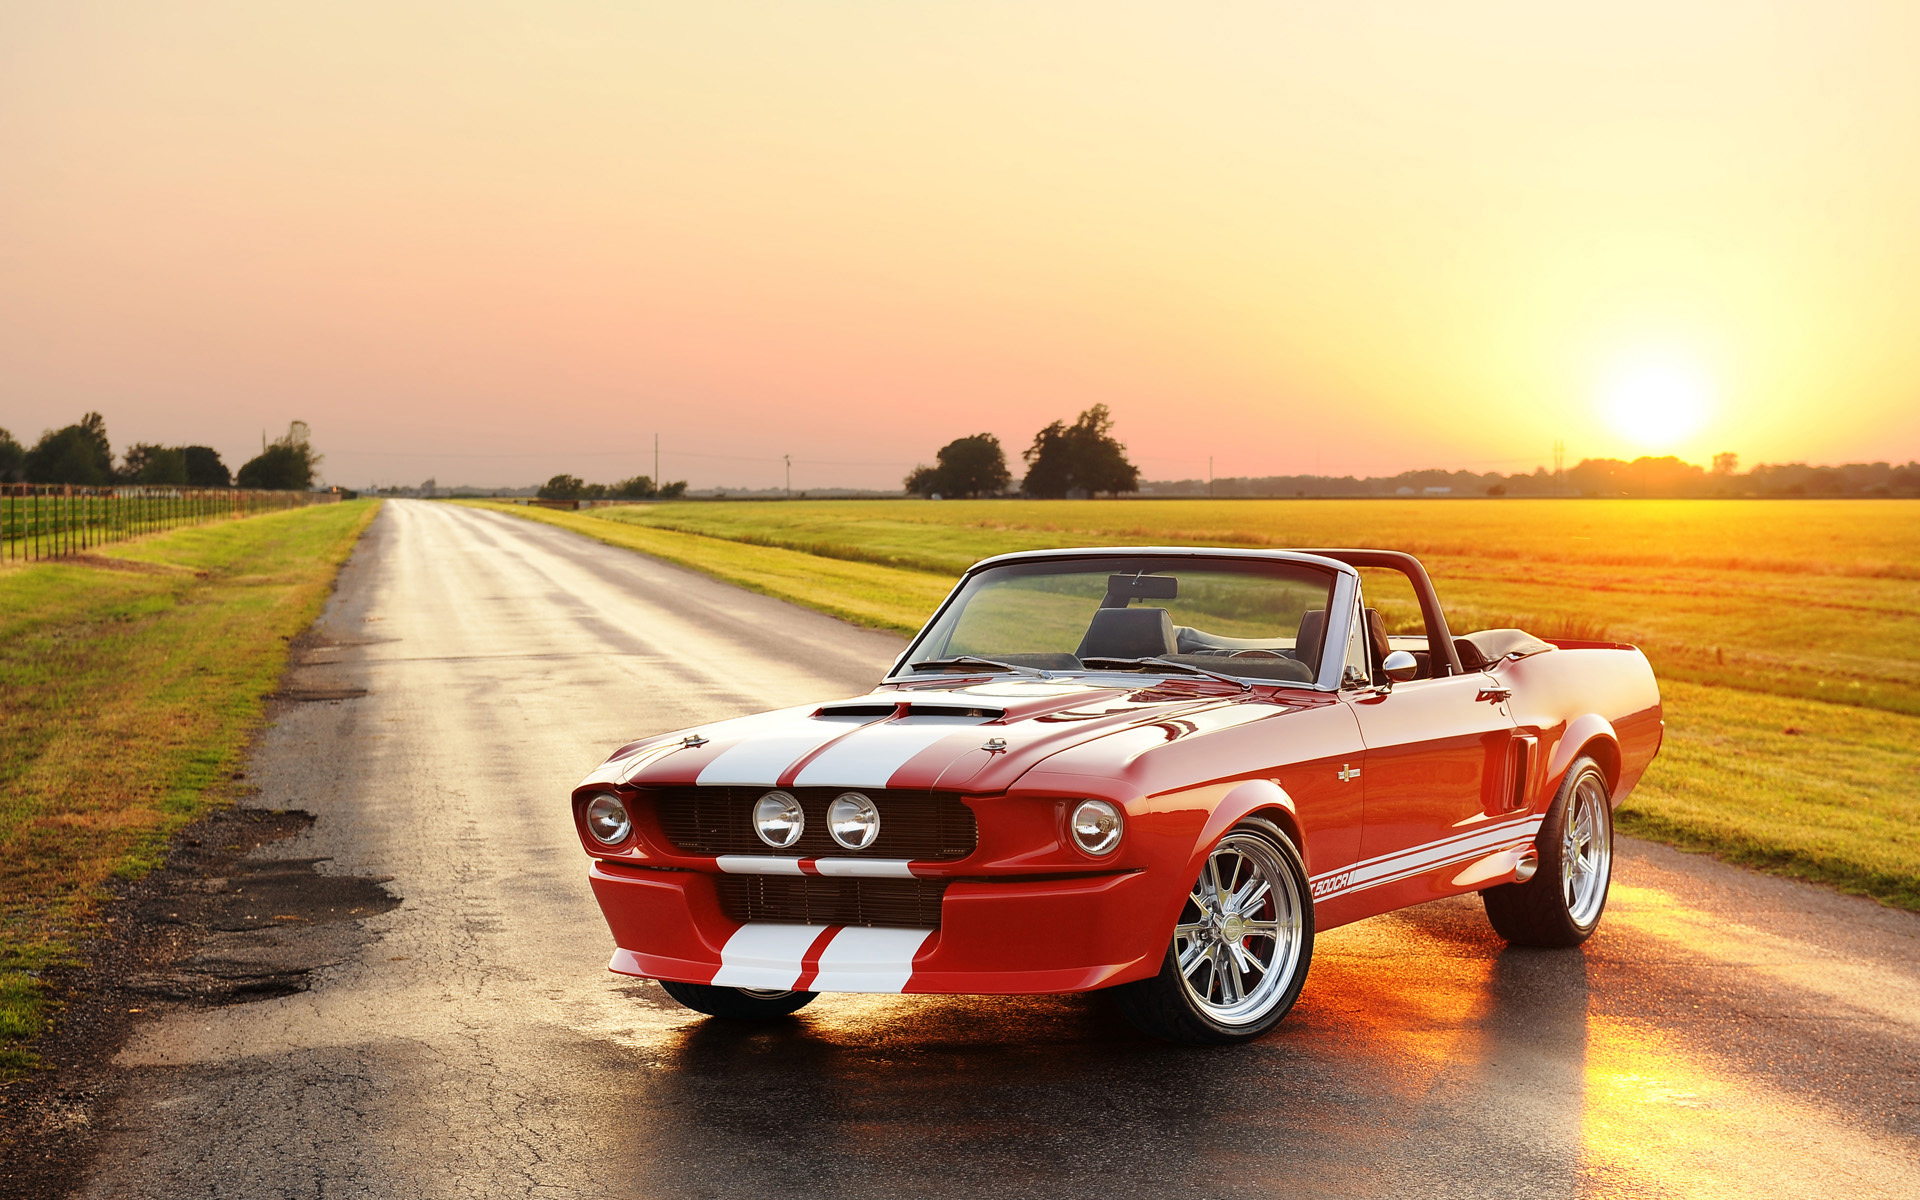 2012 Classic Shelby GT 500CR Convertible Wallpaper